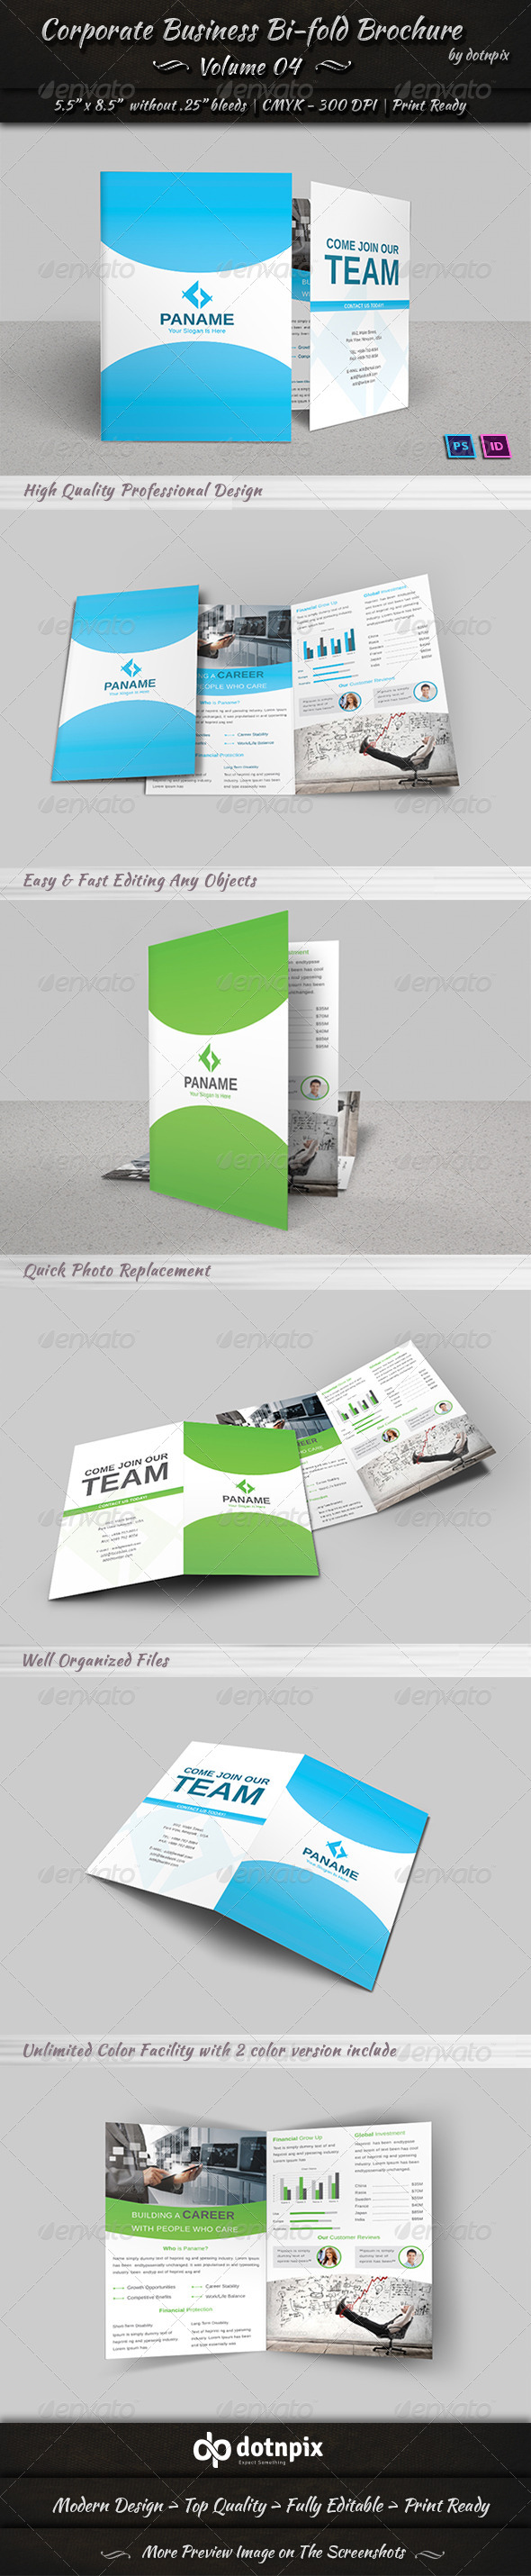 Corporate Business Bi-Fold Brochure | Volume 4 - Corporate Brochures